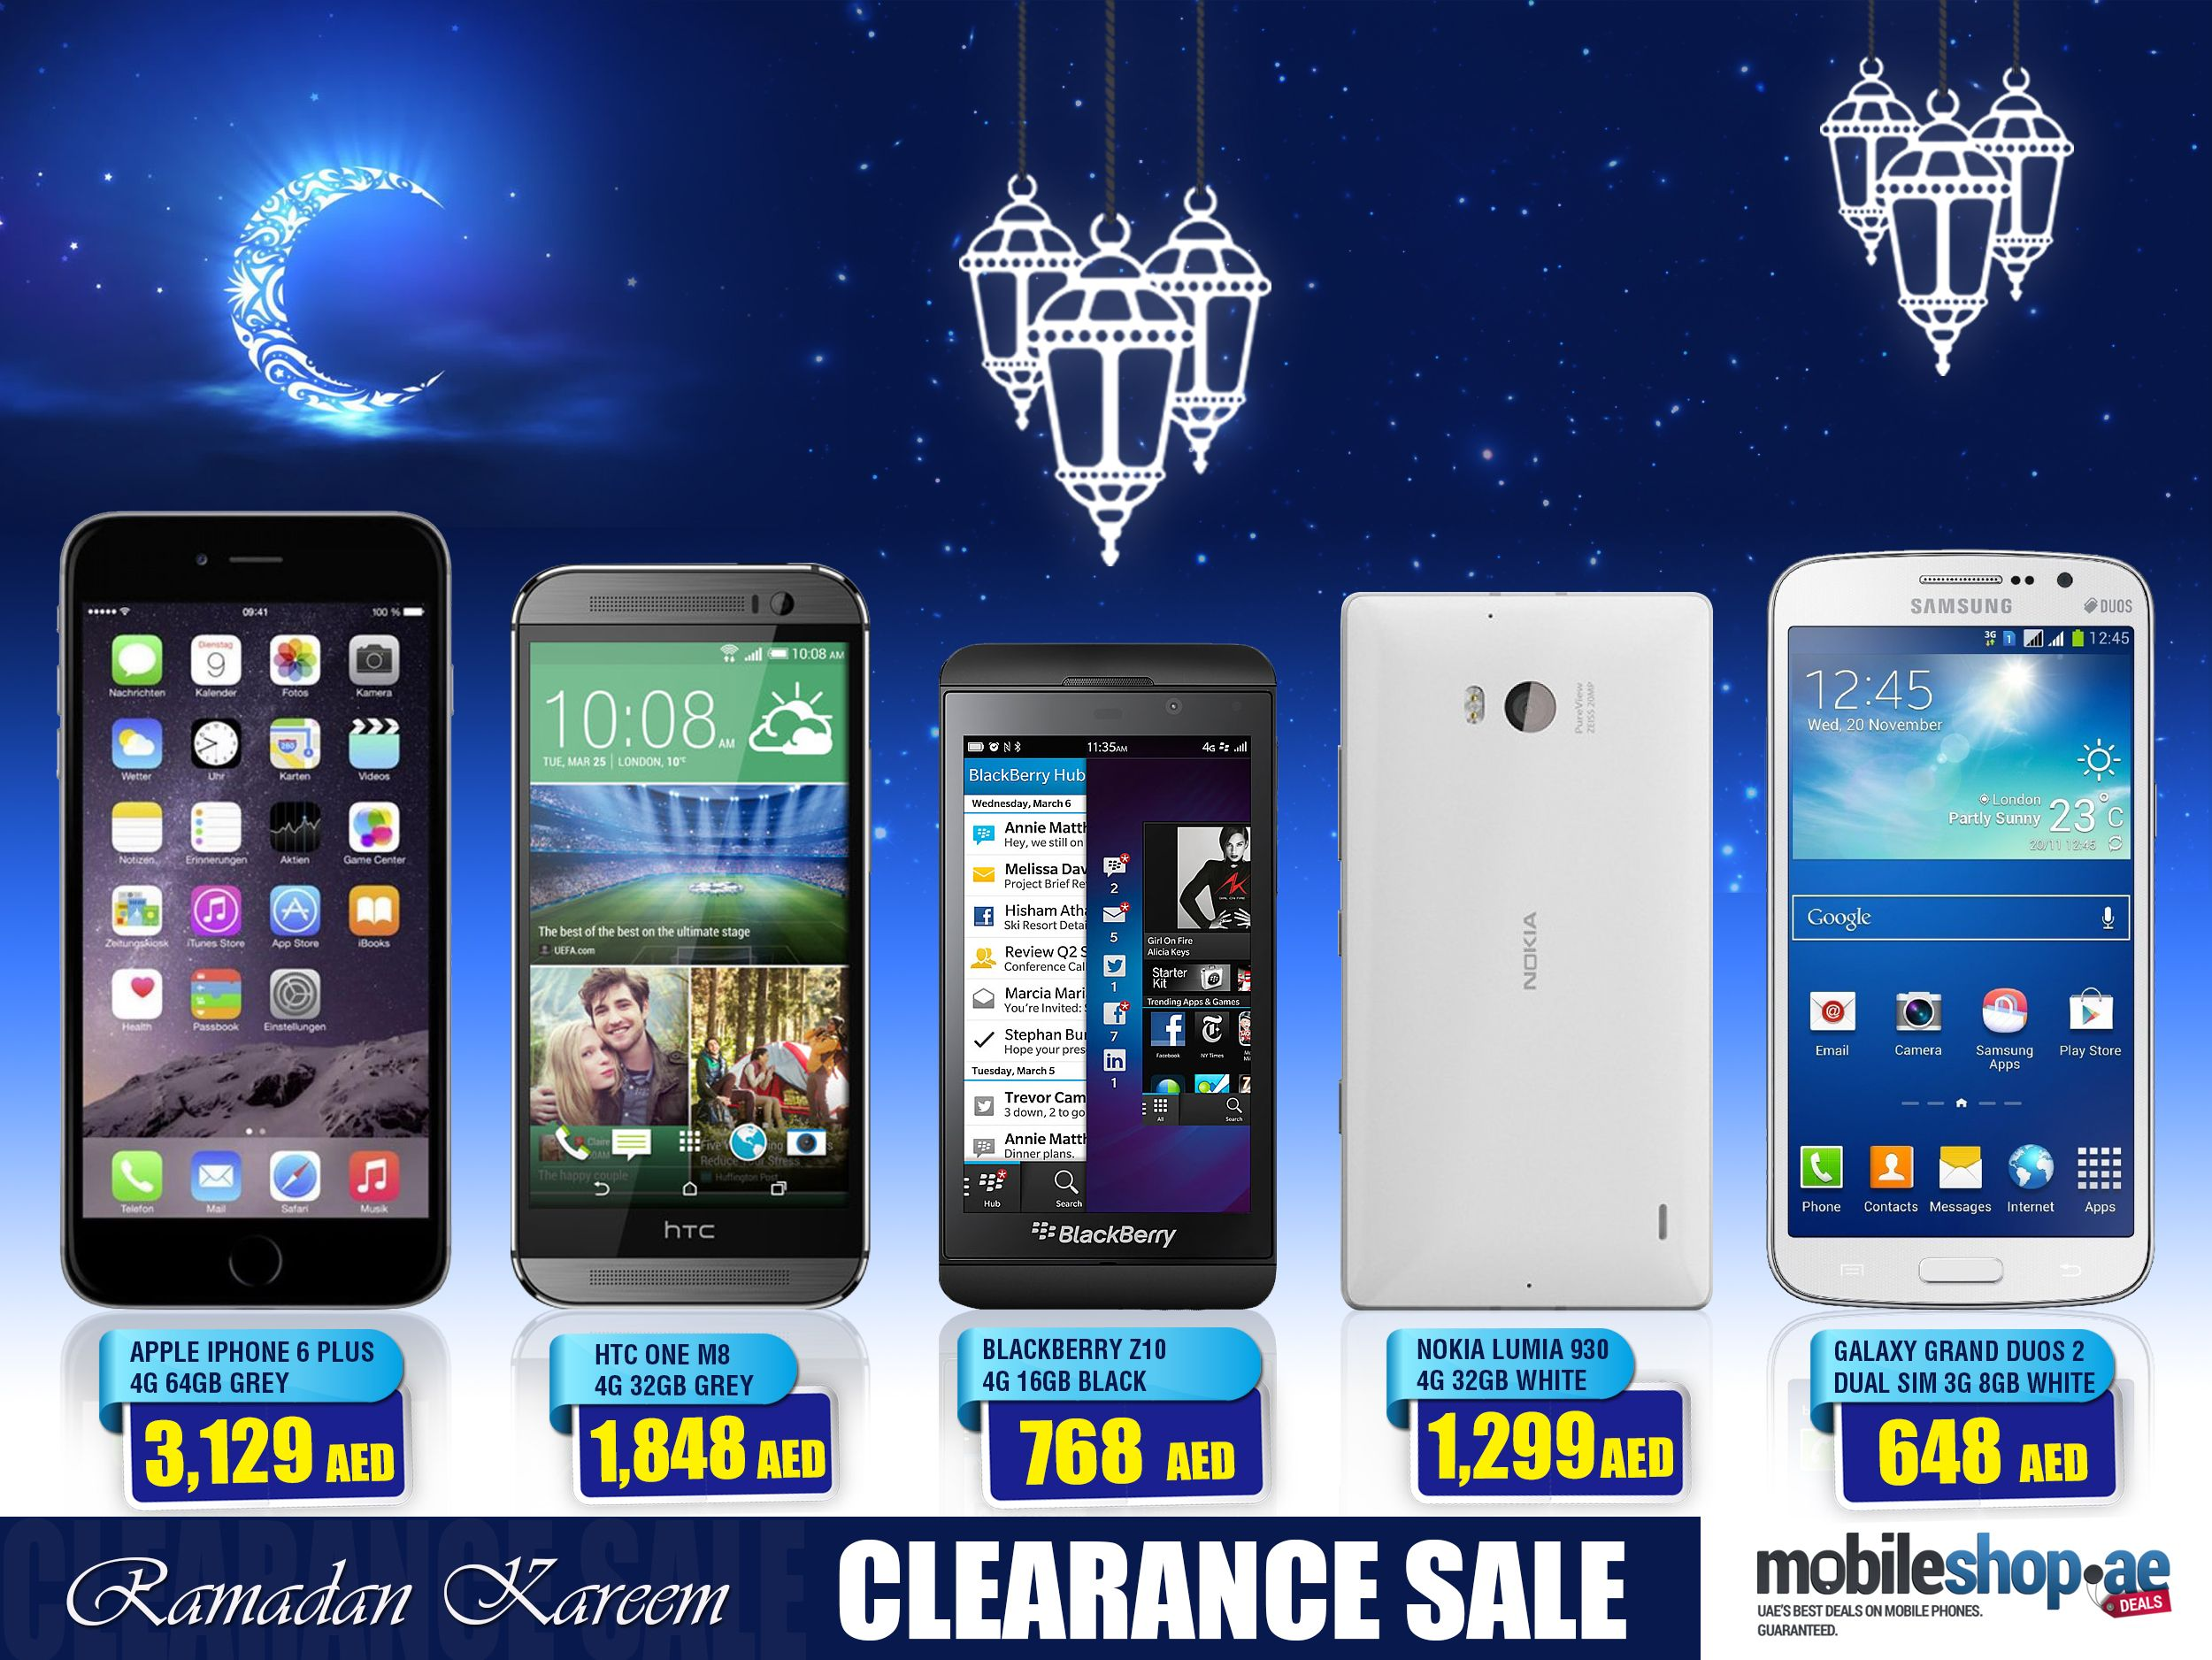 Special Offer This RAMADAN Season... http://mobileshop.ae/clearance-sale?page=1